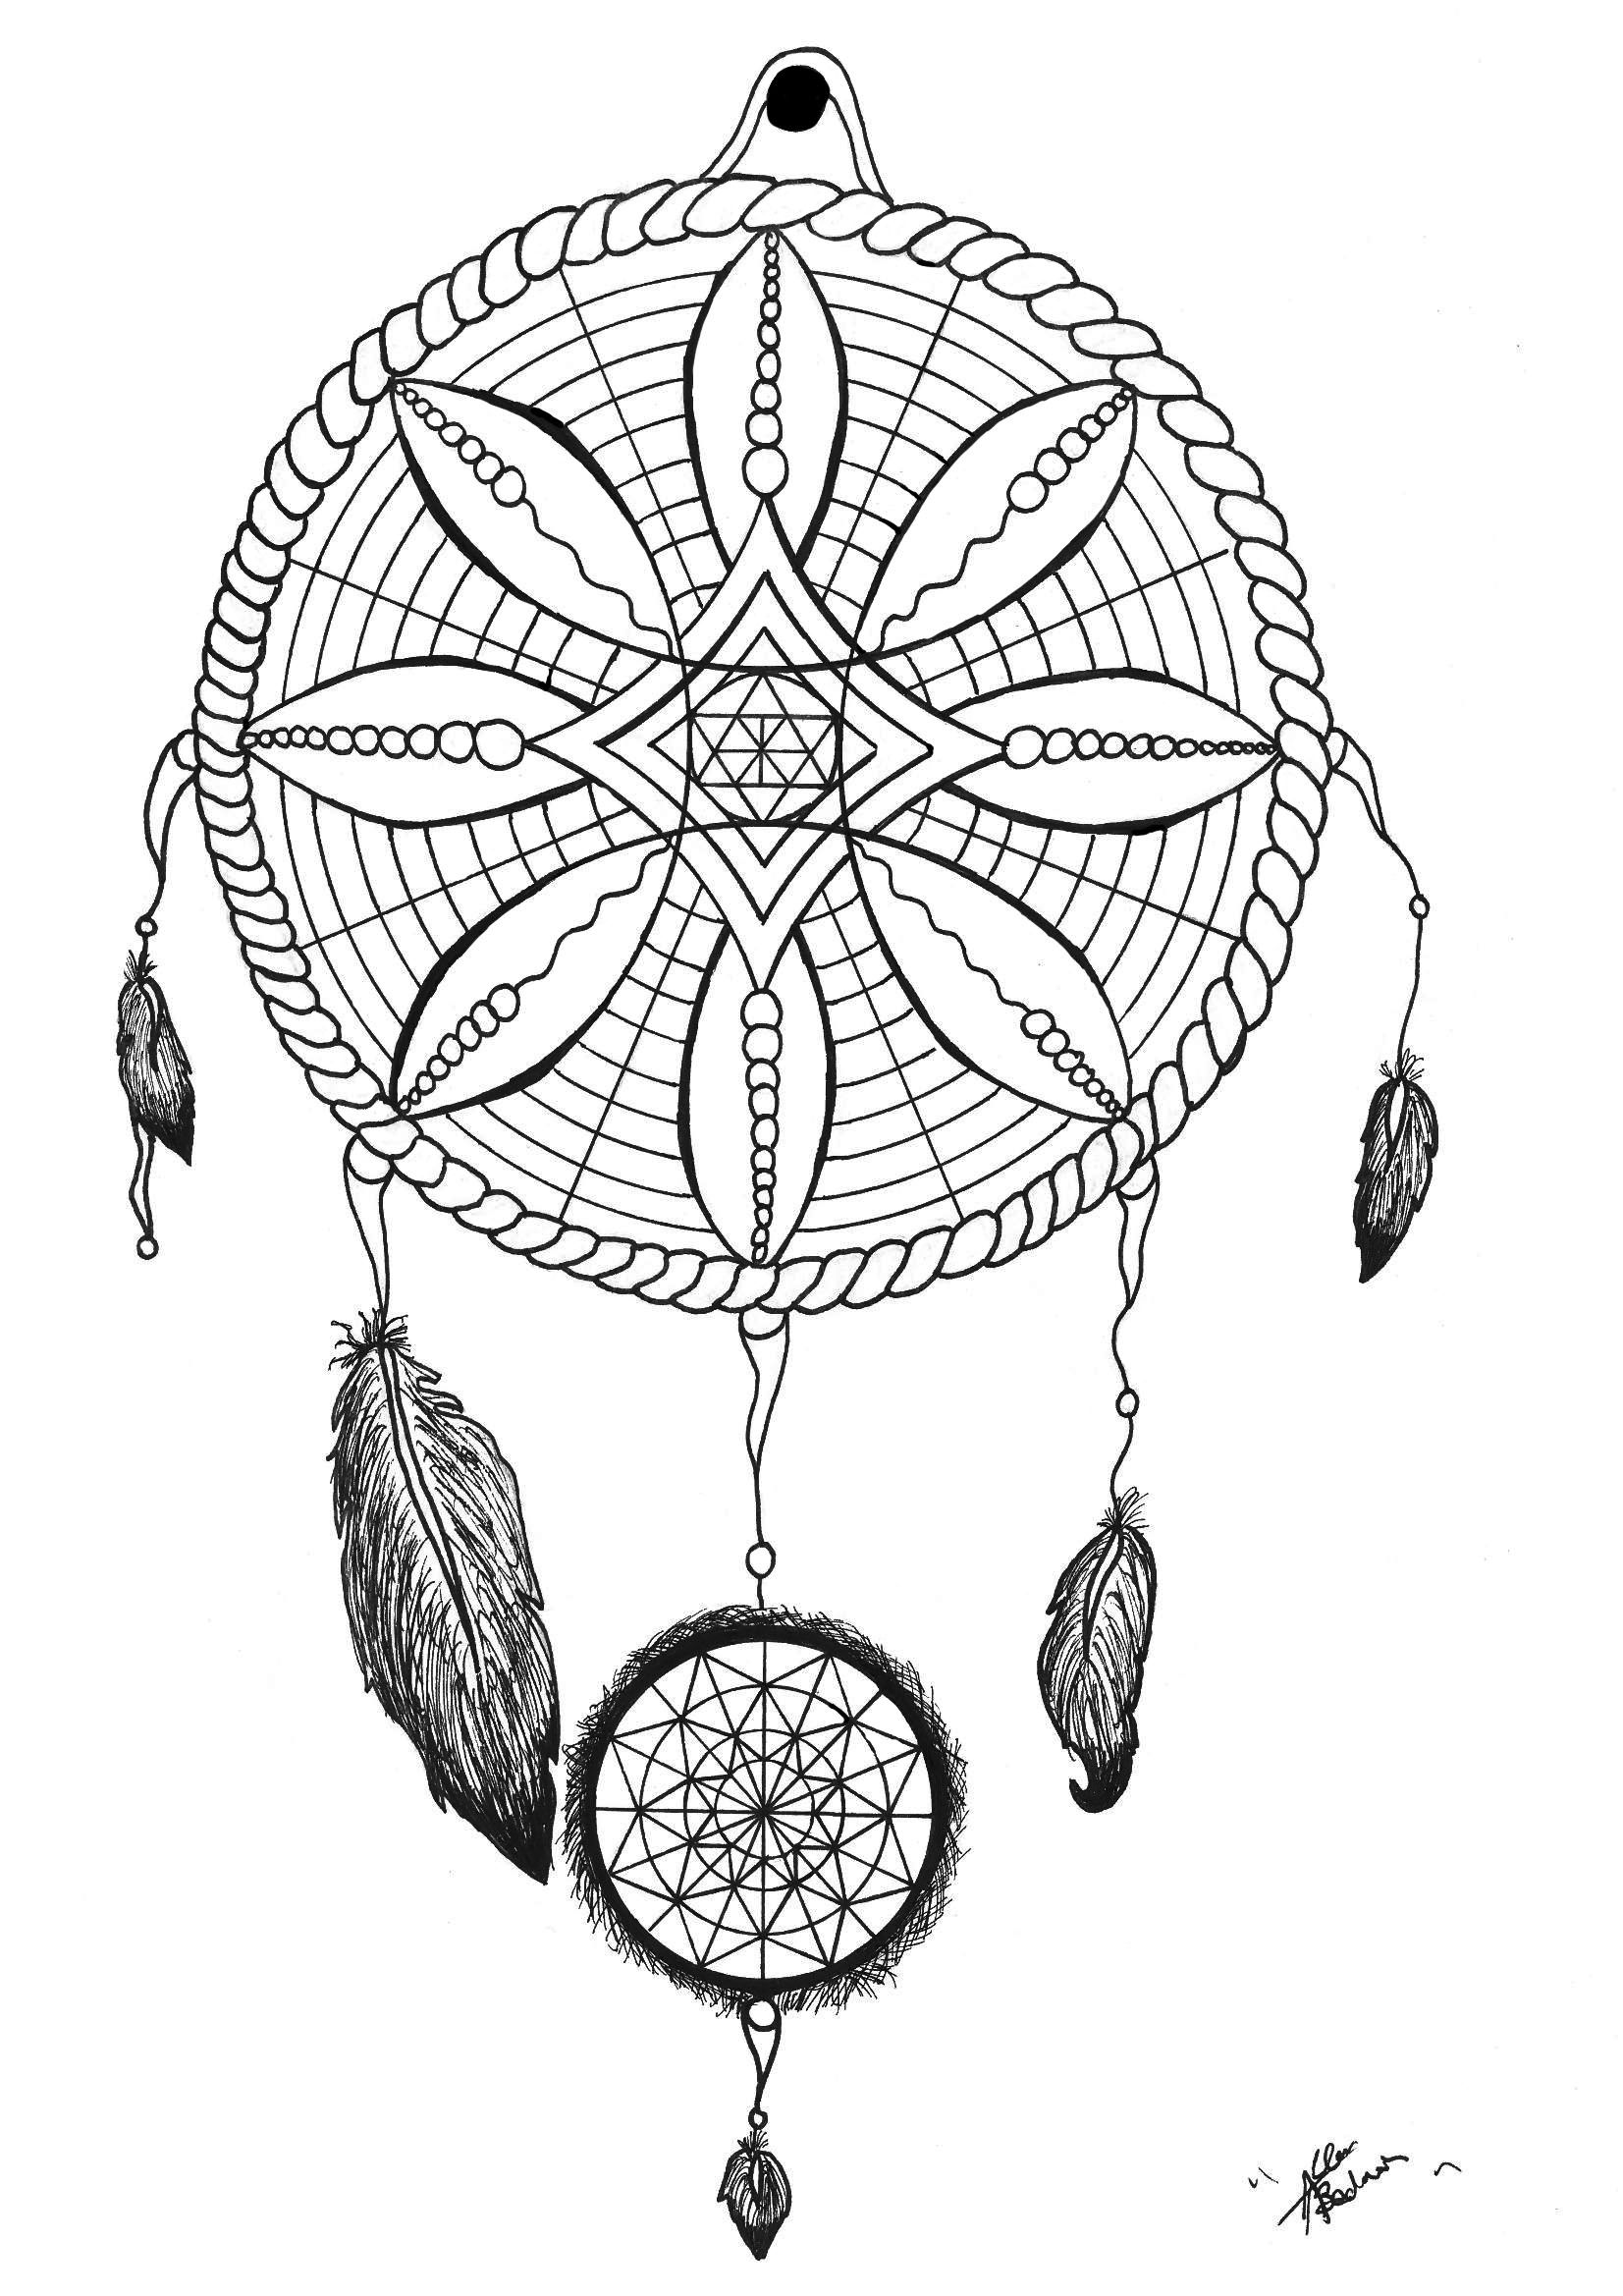 Coloring pages for adults crosses - Coloring Page Adult Dream Catcher Tattoo By Allan Free